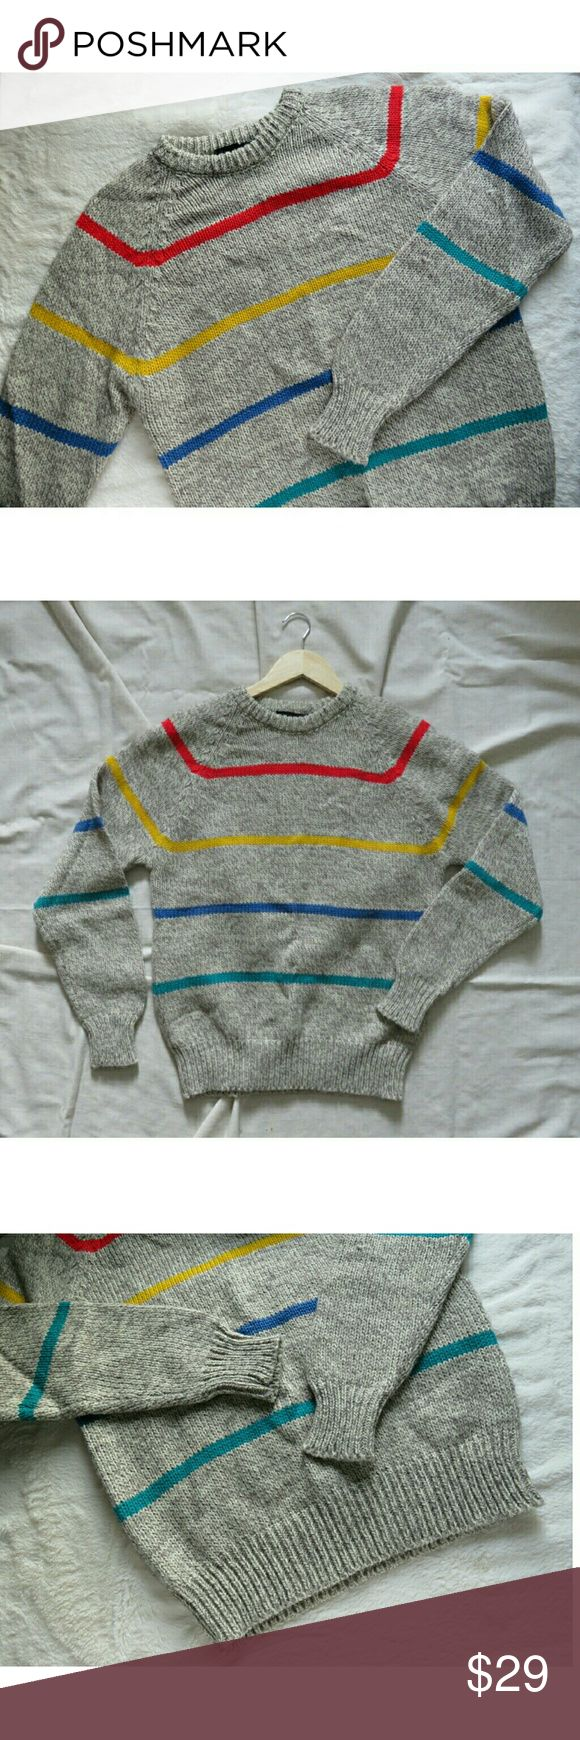 """Vintage Chunky Knit Sweater Rainbow Stripes Med Colorful and cozy chunky knit vintage sweater from Darby Sportswear! Marled gray & tan with bold primary color stripes (red, yellow, blue, green). 85% acrylic, 15% wool, wide cuffs at waist and sleeves, crewneck. Unisex size Men's Small or Ladies Medium, (oversized Small). Measures lying flat approx 20.5"""" across chest, 26"""" from shoulder to waist, and 23.5"""" from shoulder down sleeve to wrist. Soft and #sweaterweather ready! Packed carefully and…"""